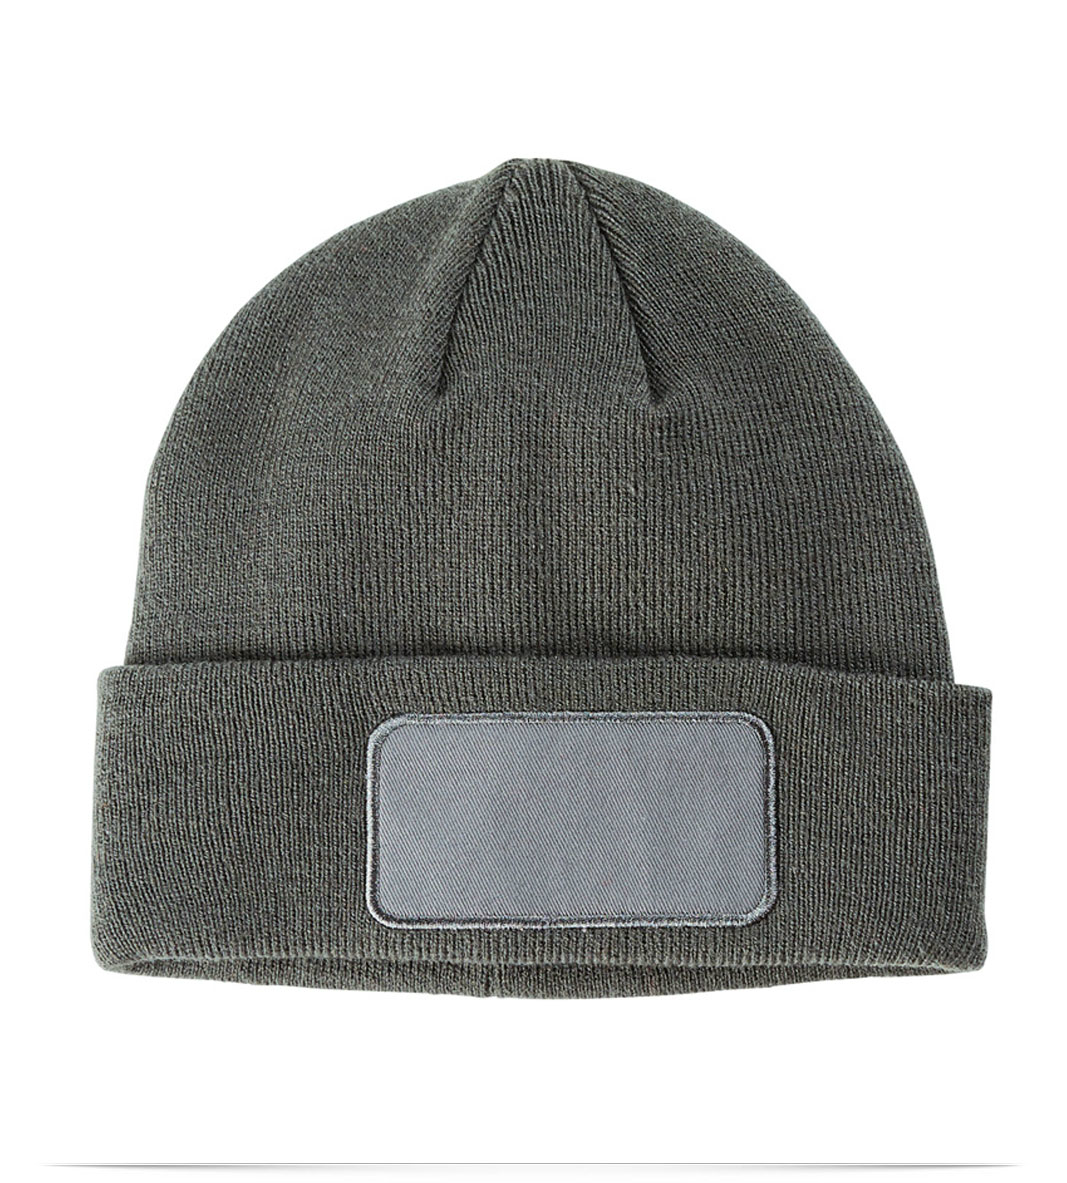 463c9c4f22d34c Custom Embroidered Big Accessories Patch Beanie Online at AllStar Logo